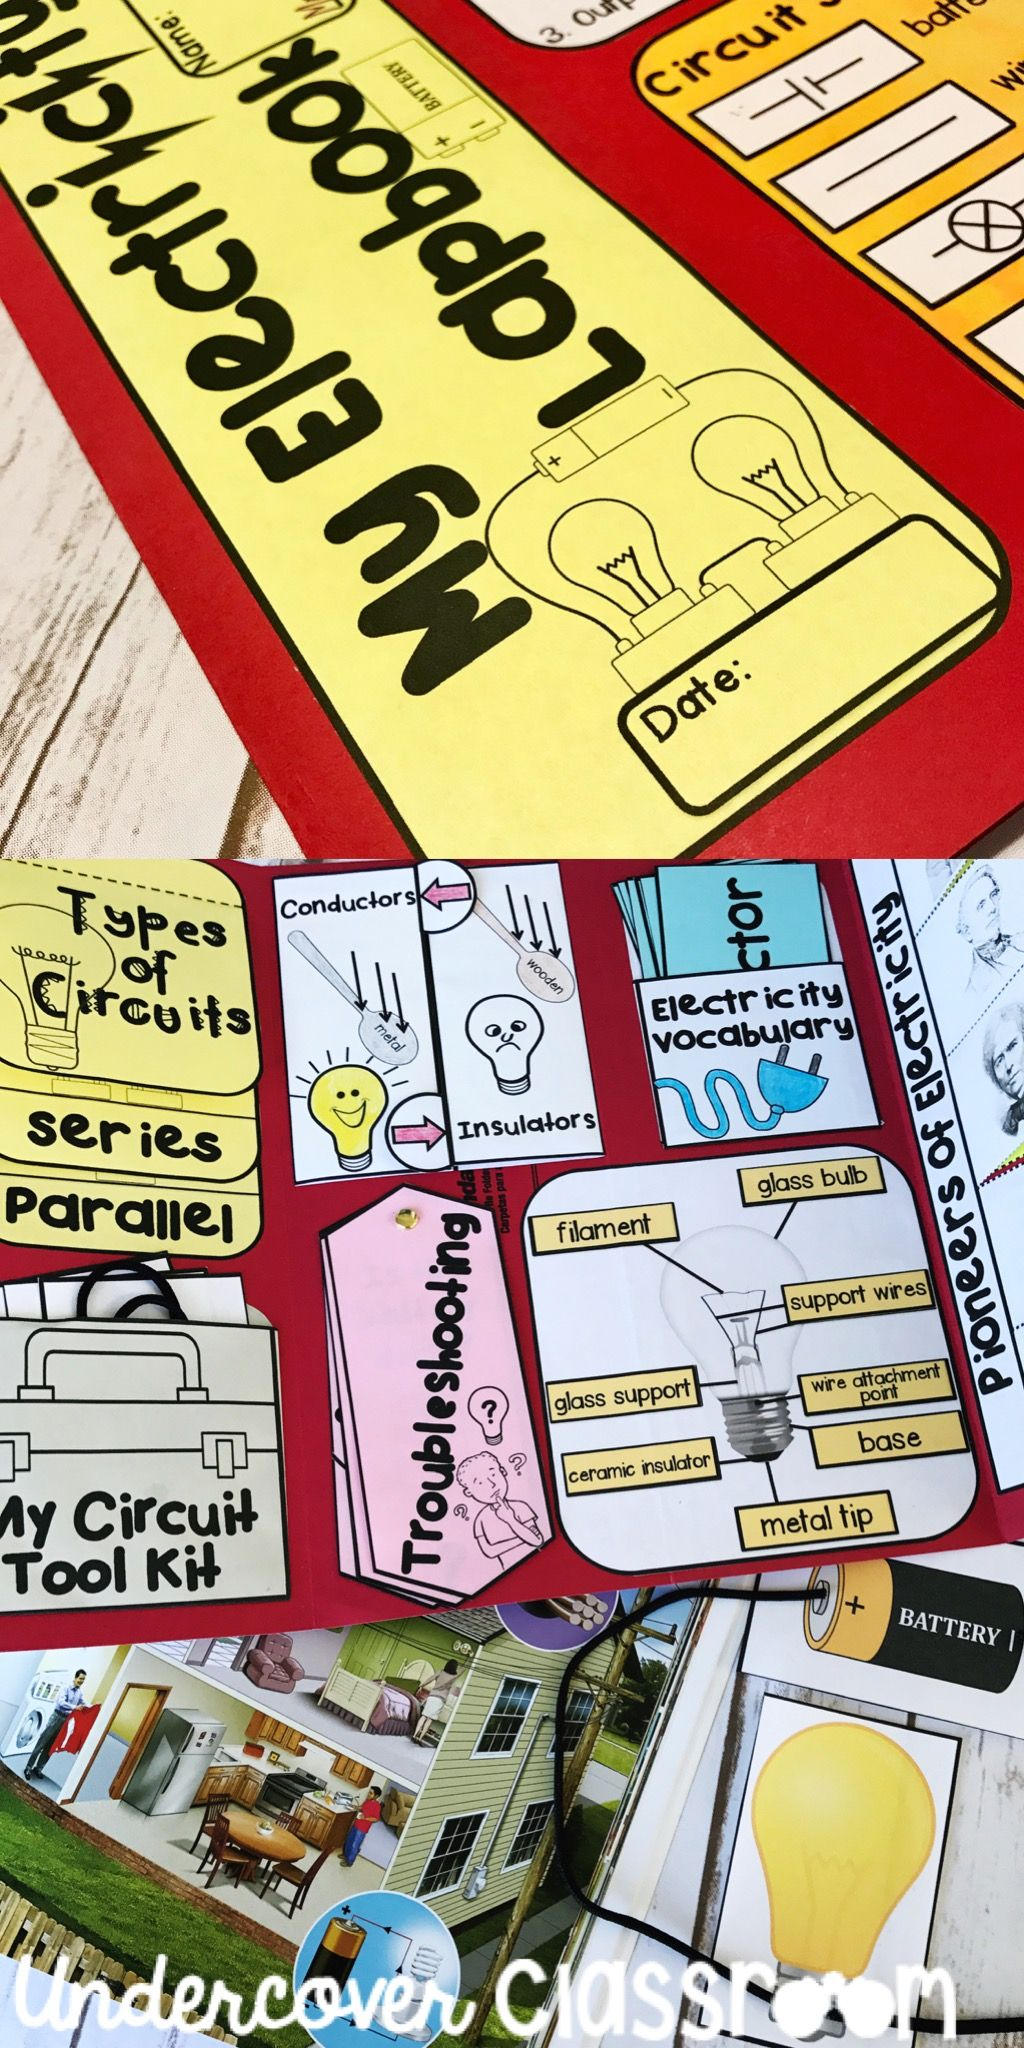 Electricity Lapbook For Grades 3 5 Includes Simple Circuit Types Of Circuits Series Parallel Trouble Shooting Parts Of Lapbook Electricity Simple Circuit